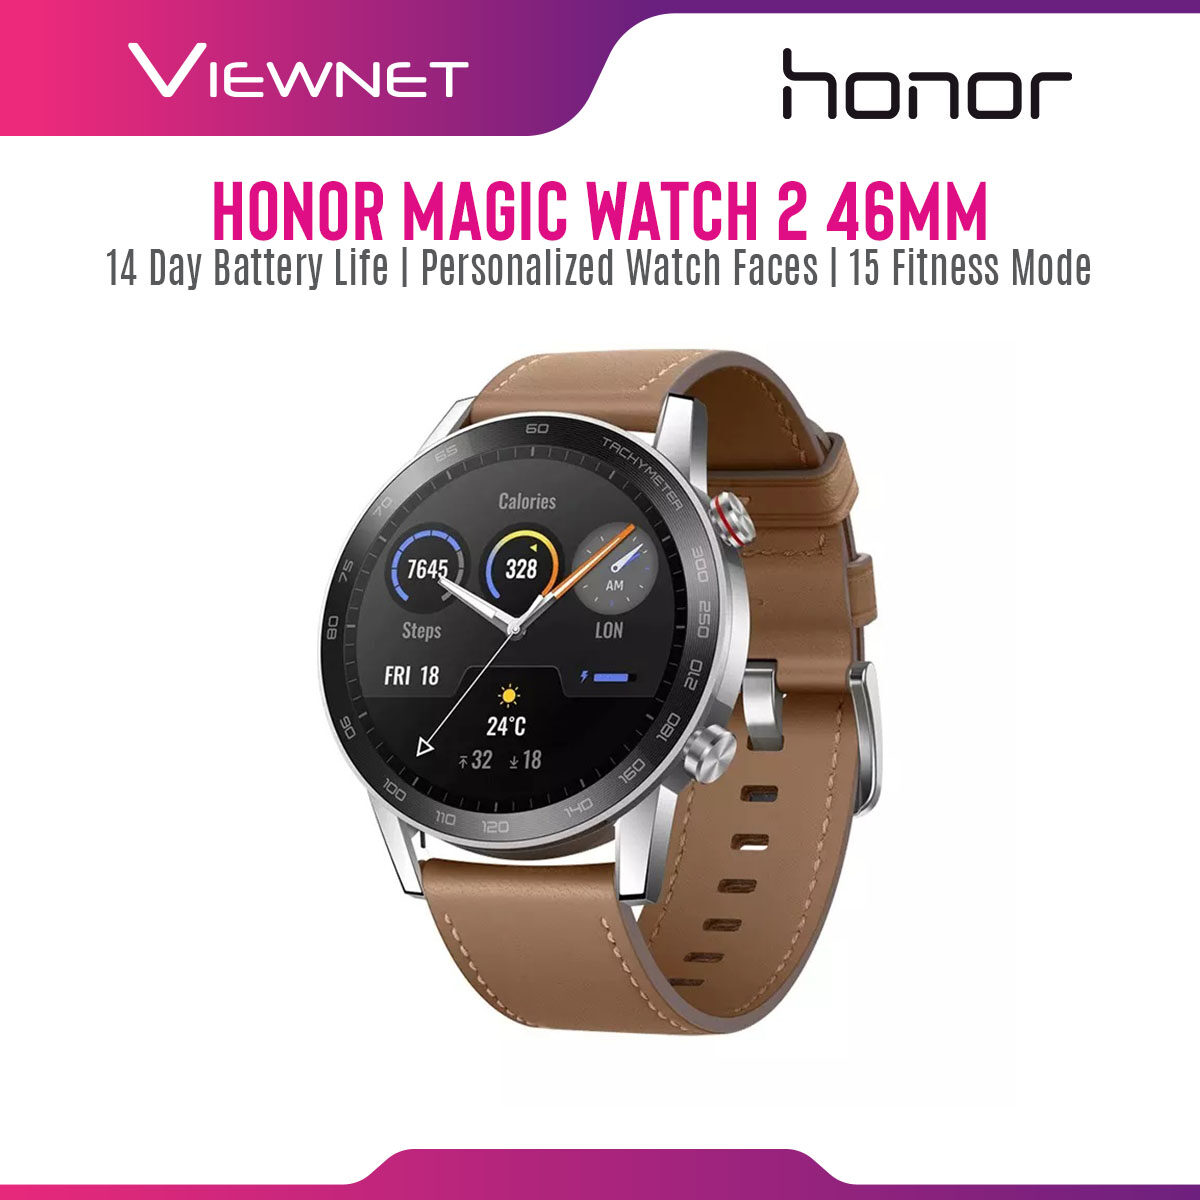 Honor Magic Watch 2 (14-Day Battery Life/Personalized Watch Faces/15 Goal-Based Fitness Modes) Smartwatch with 1 Year Honor Malaysia Warranty